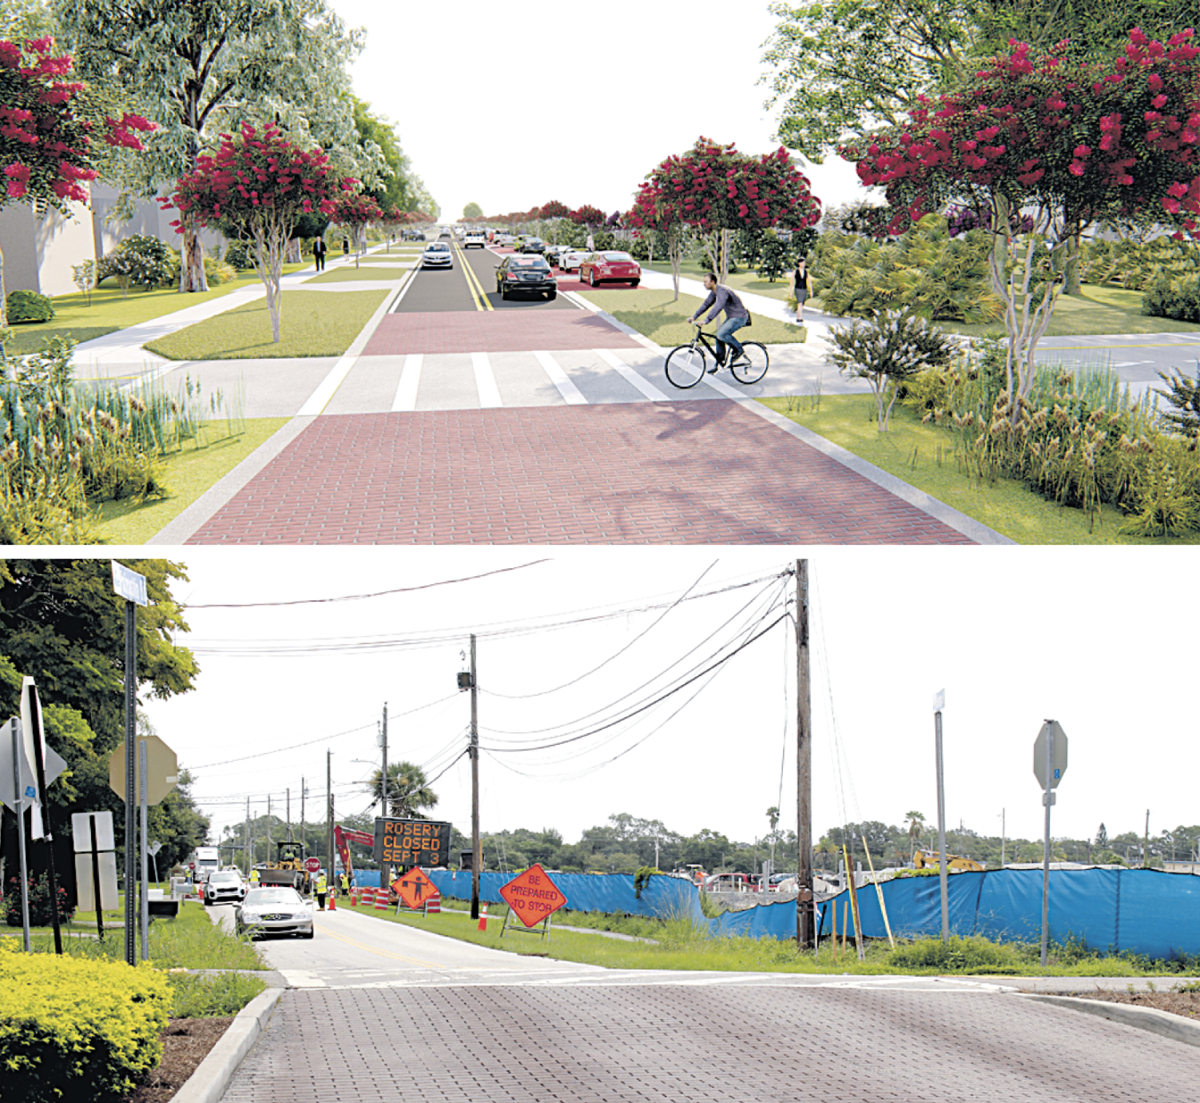 Rosery Road project